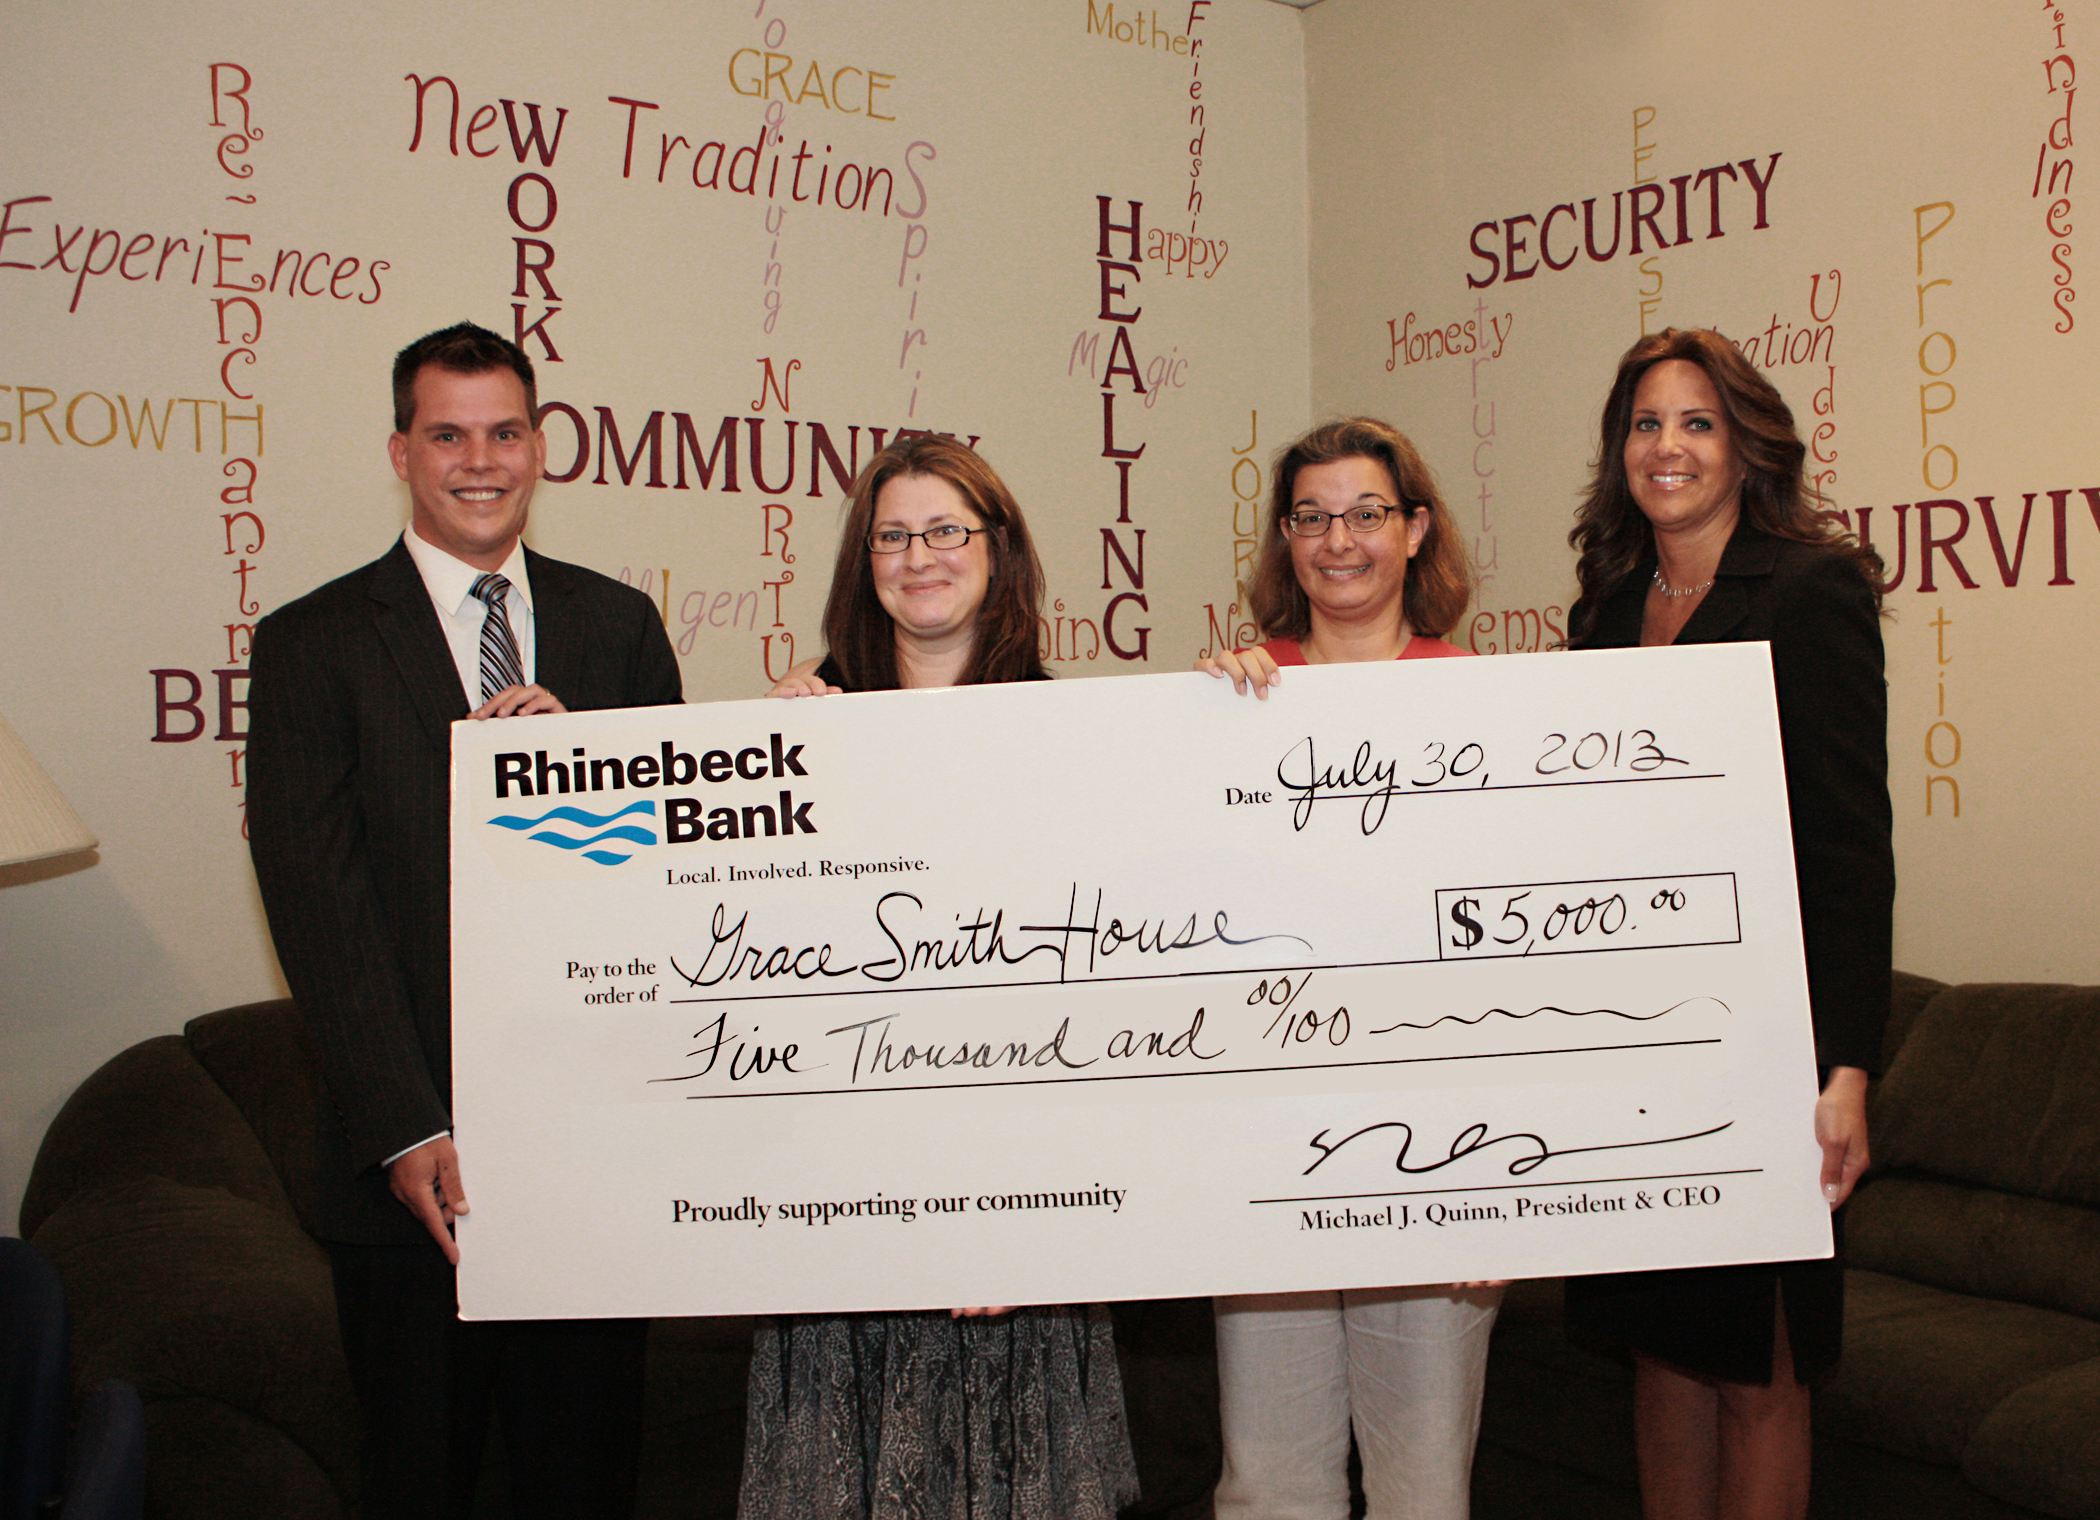 Rhinebeck Bank - Grace Smith House donation group photo